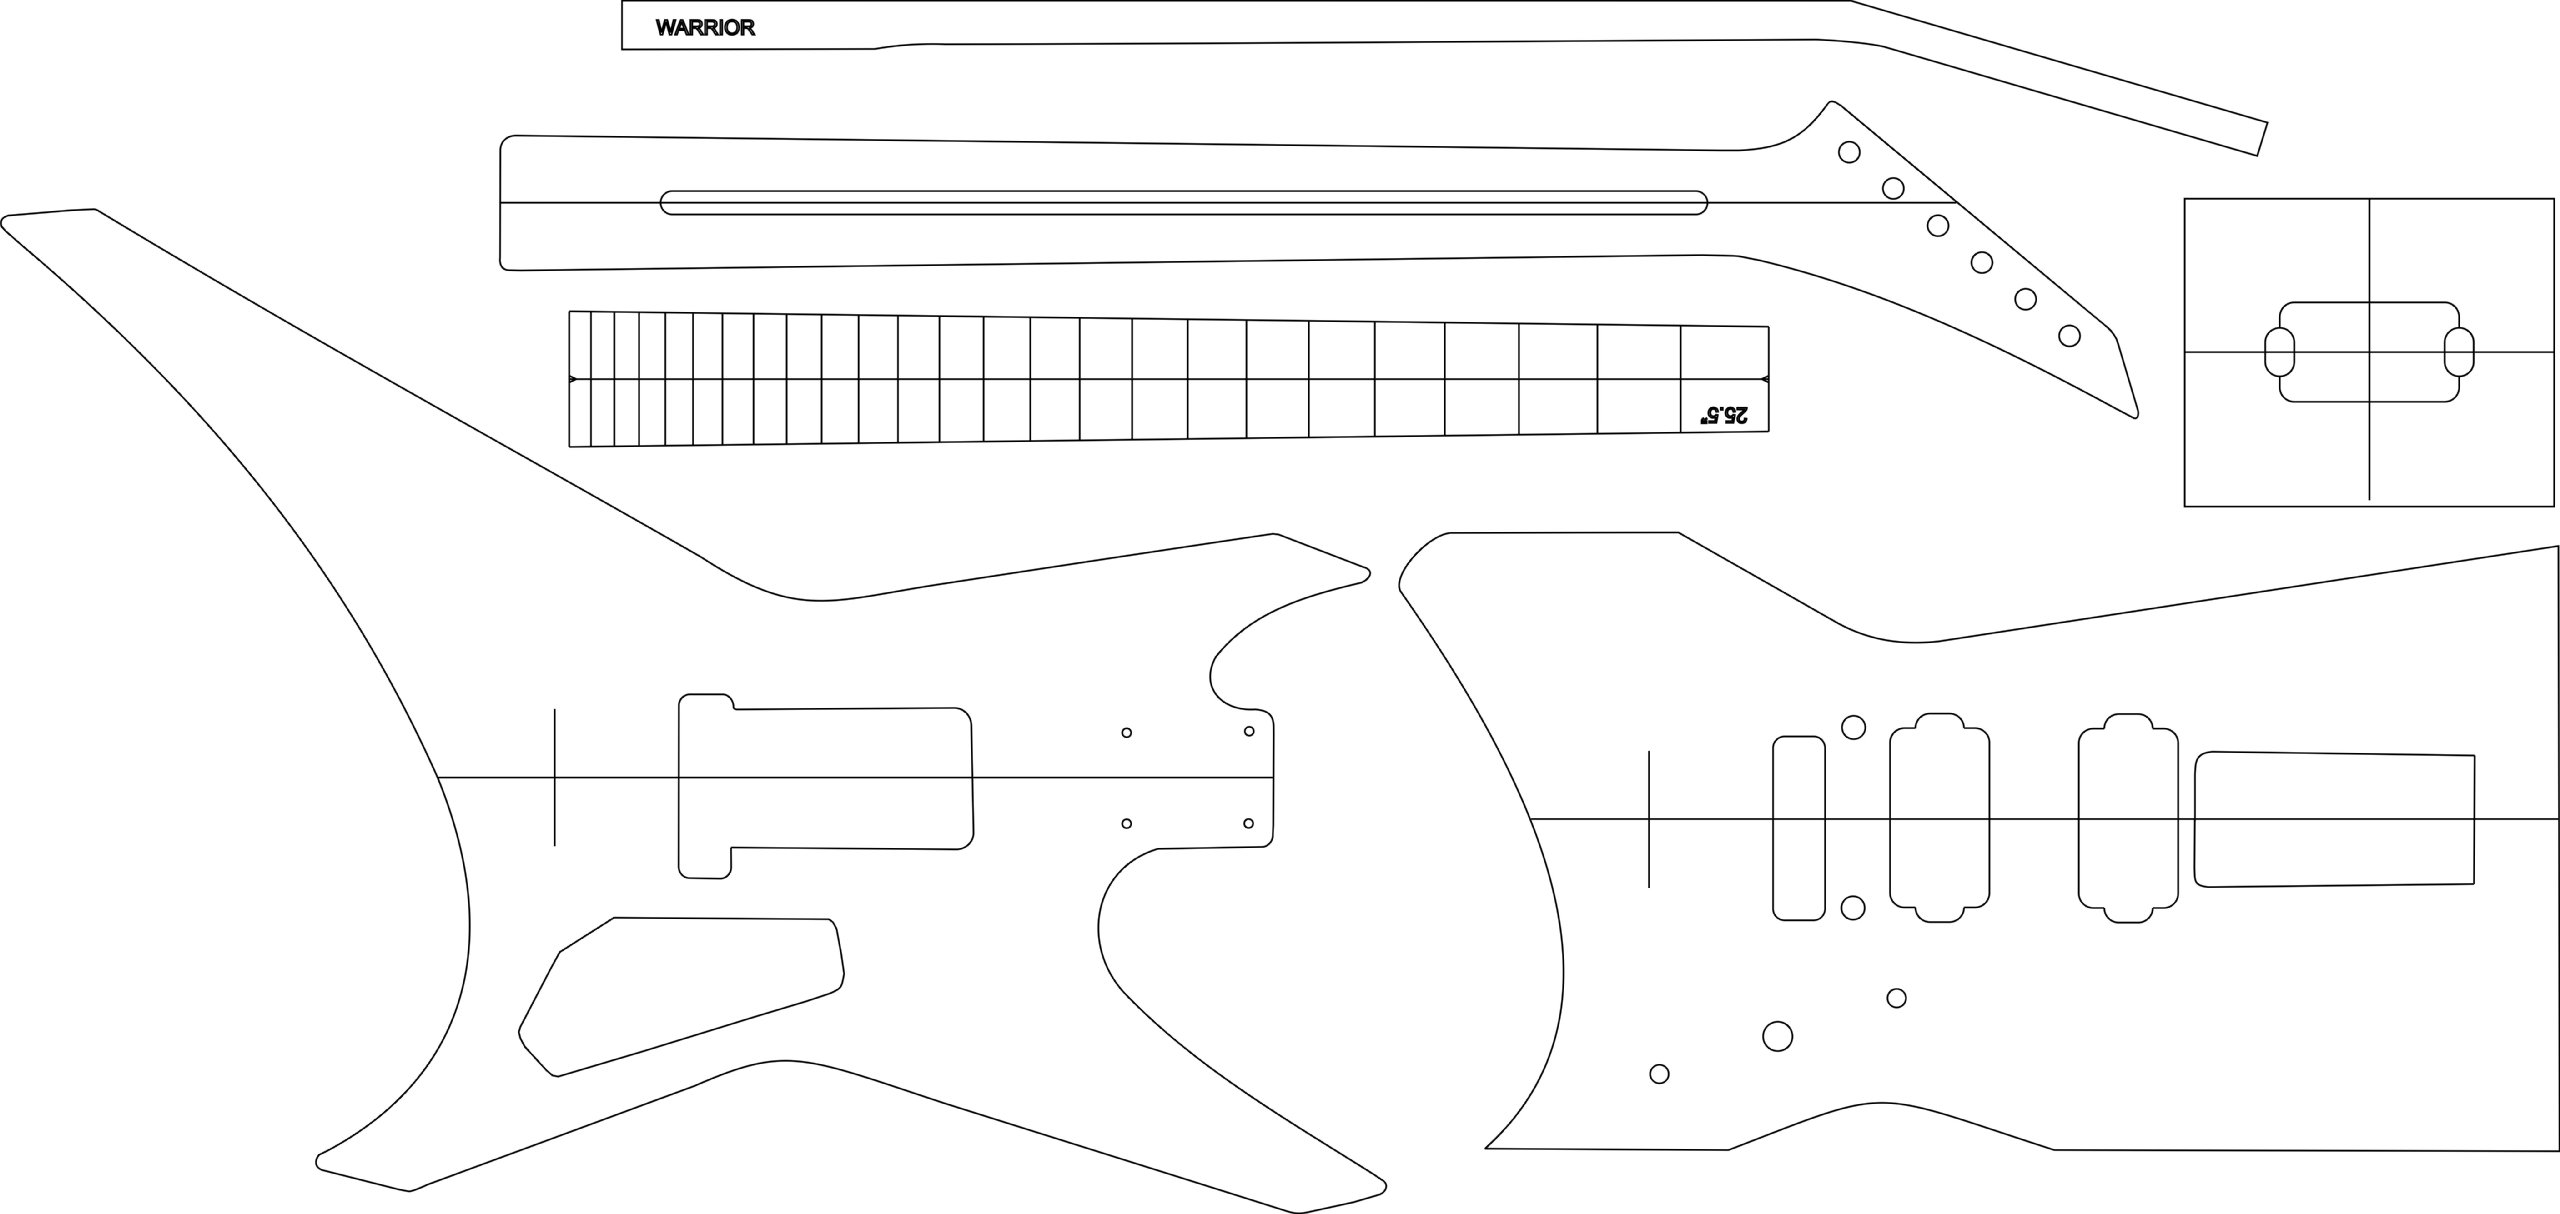 Electric Guitar Layout Template - Warrior